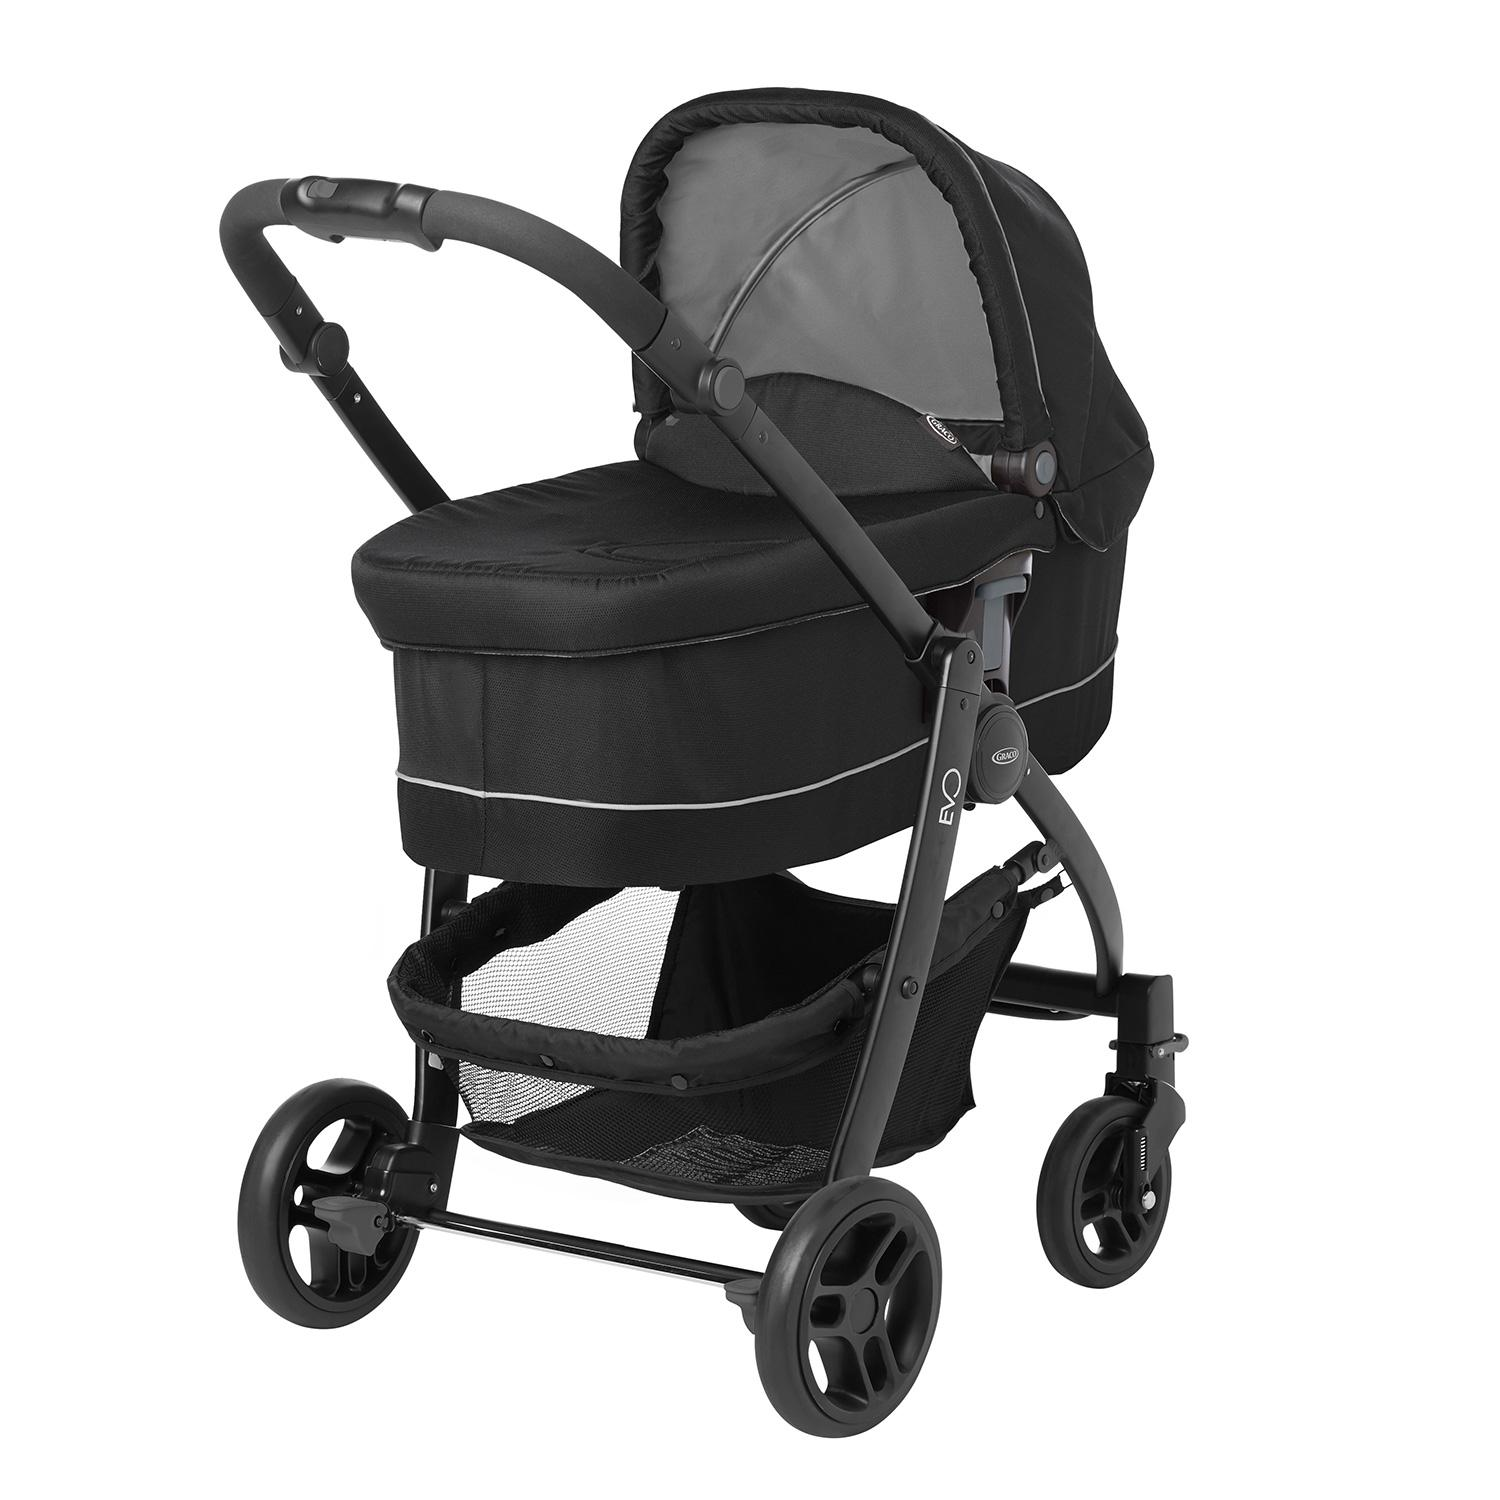 Raincover For Graco Infant Car Seat